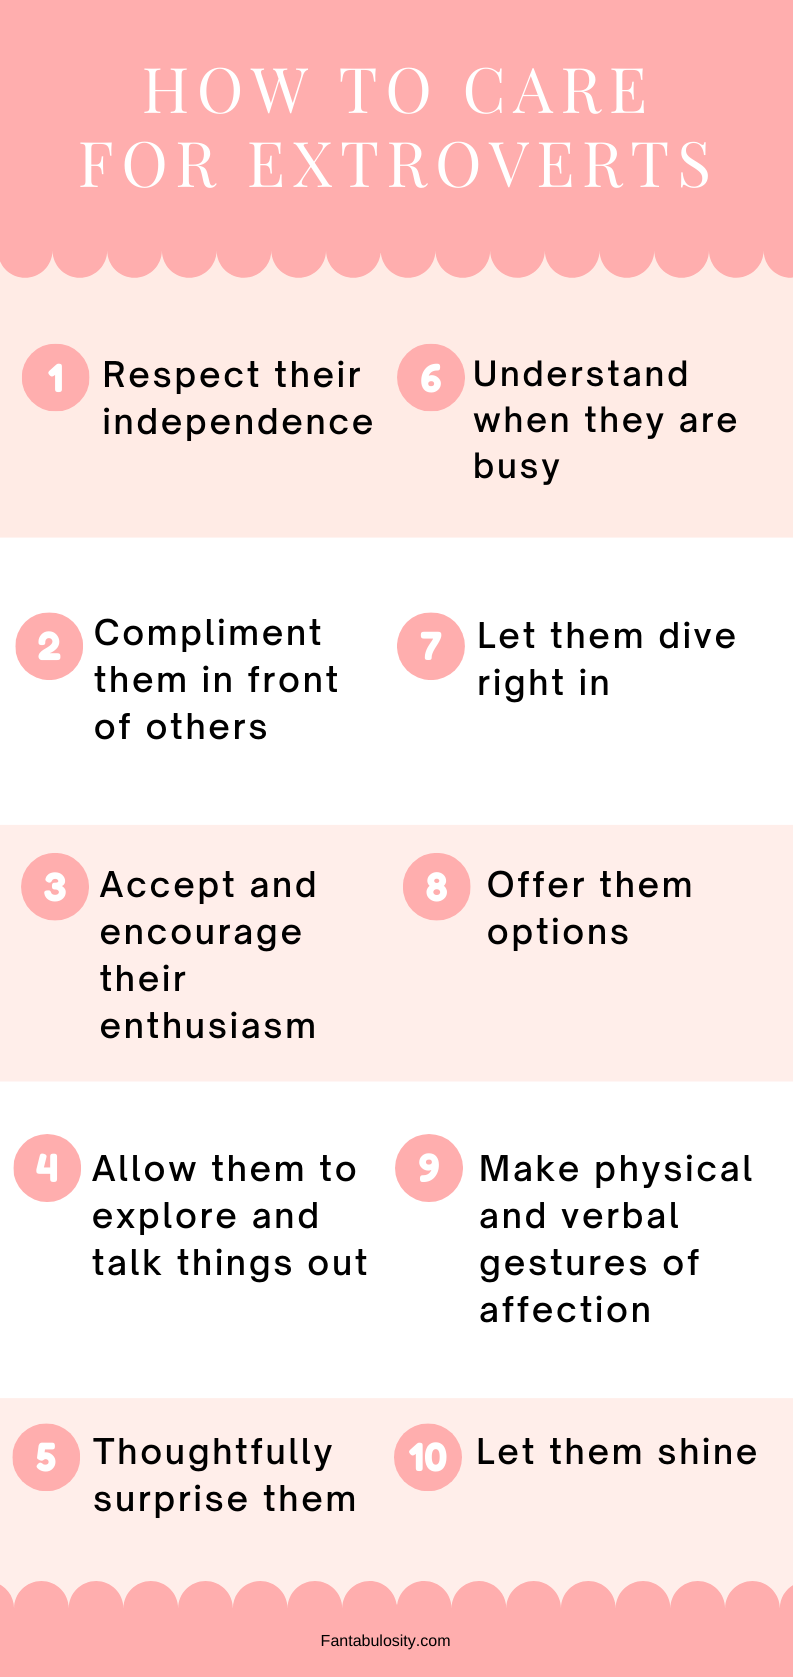 How to Care for extrovert